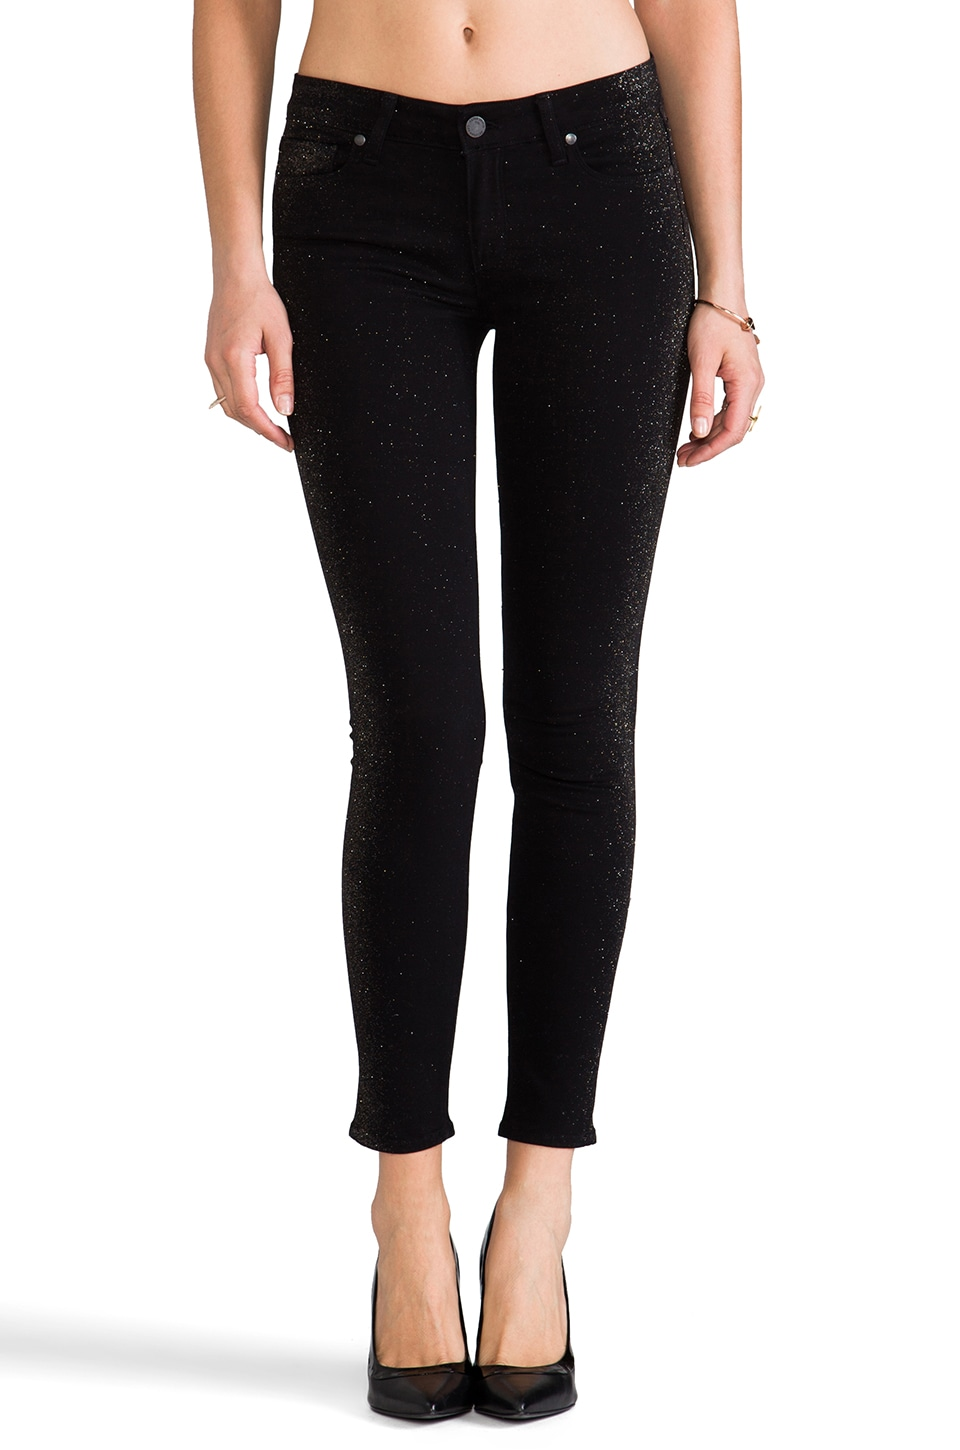 PAIGE Denim Verdugo Shimmer Tuxedo in Black and Gold